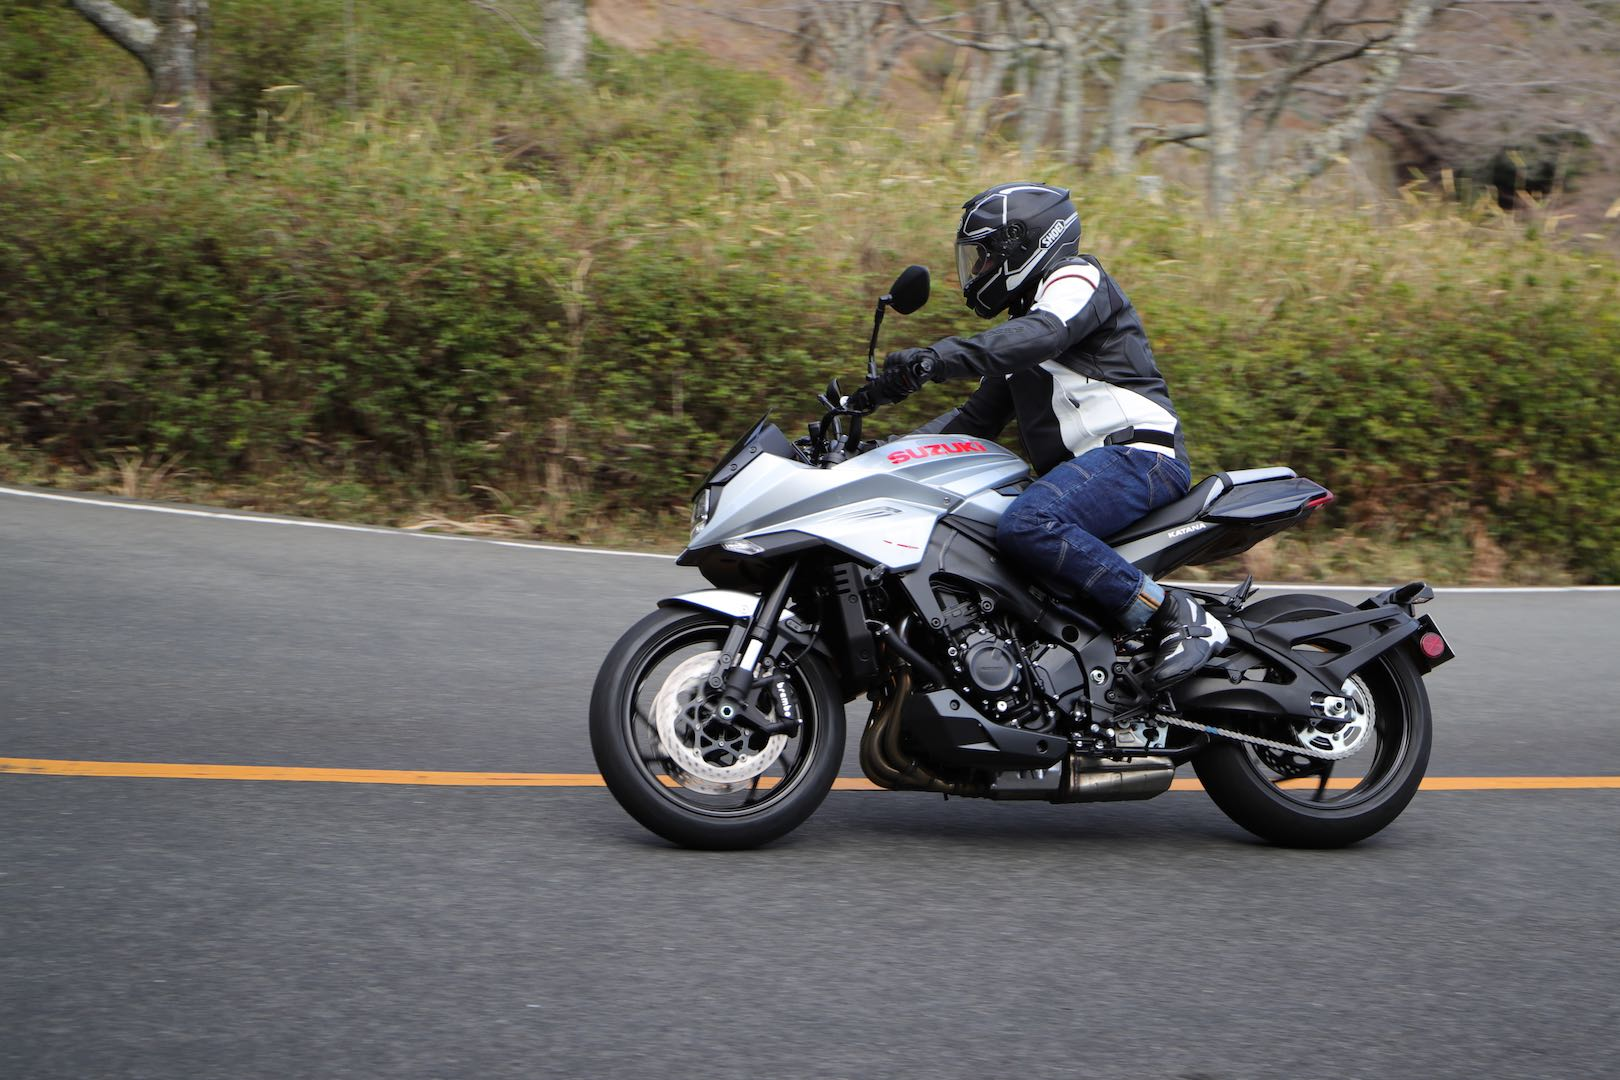 2020 Suzuki Katana Review: 16 Fast Facts